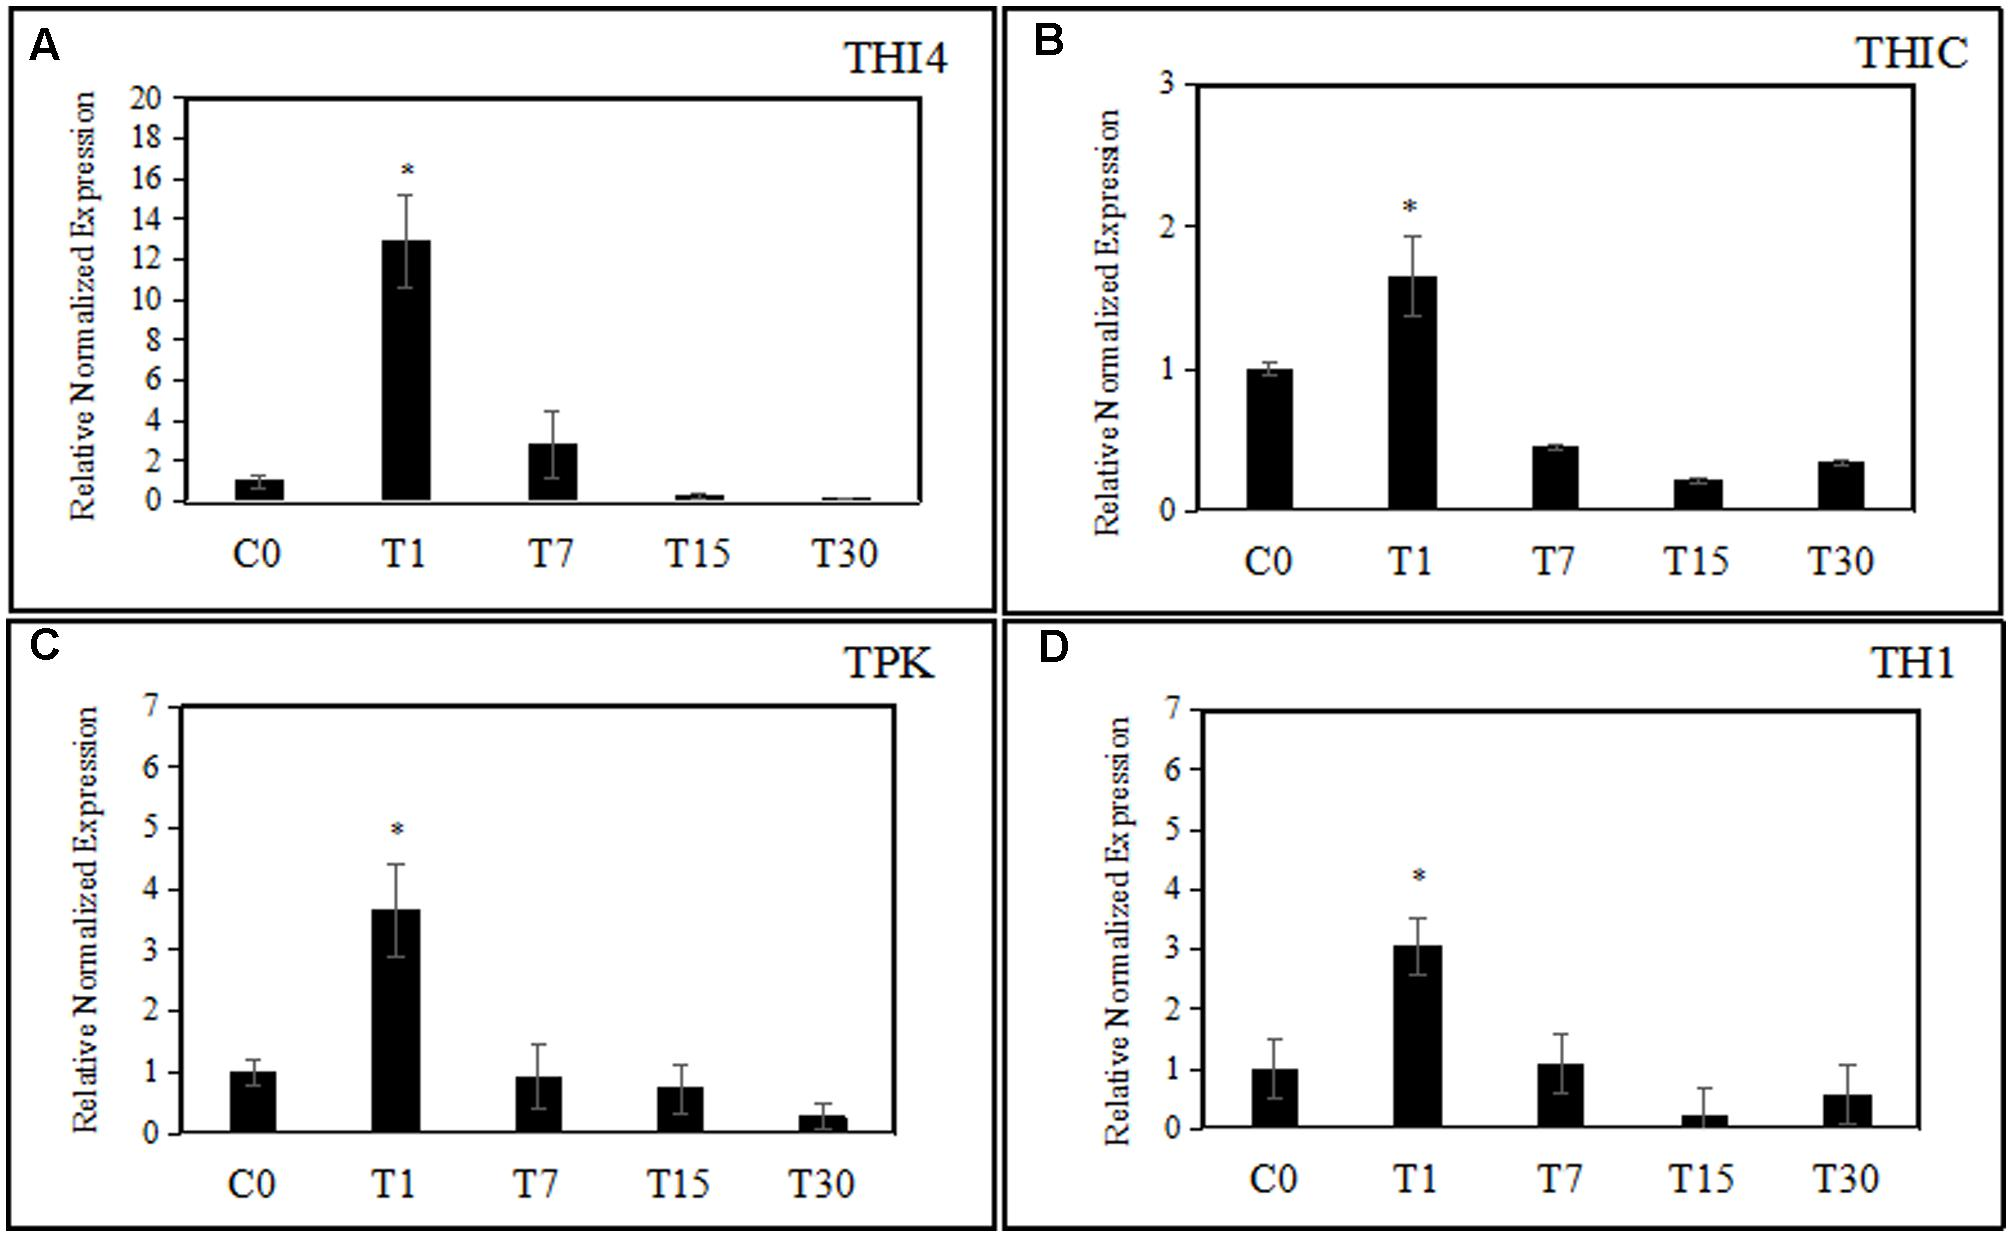 Frontiers | Enhancement of Thiamine Biosynthesis in Oil Palm